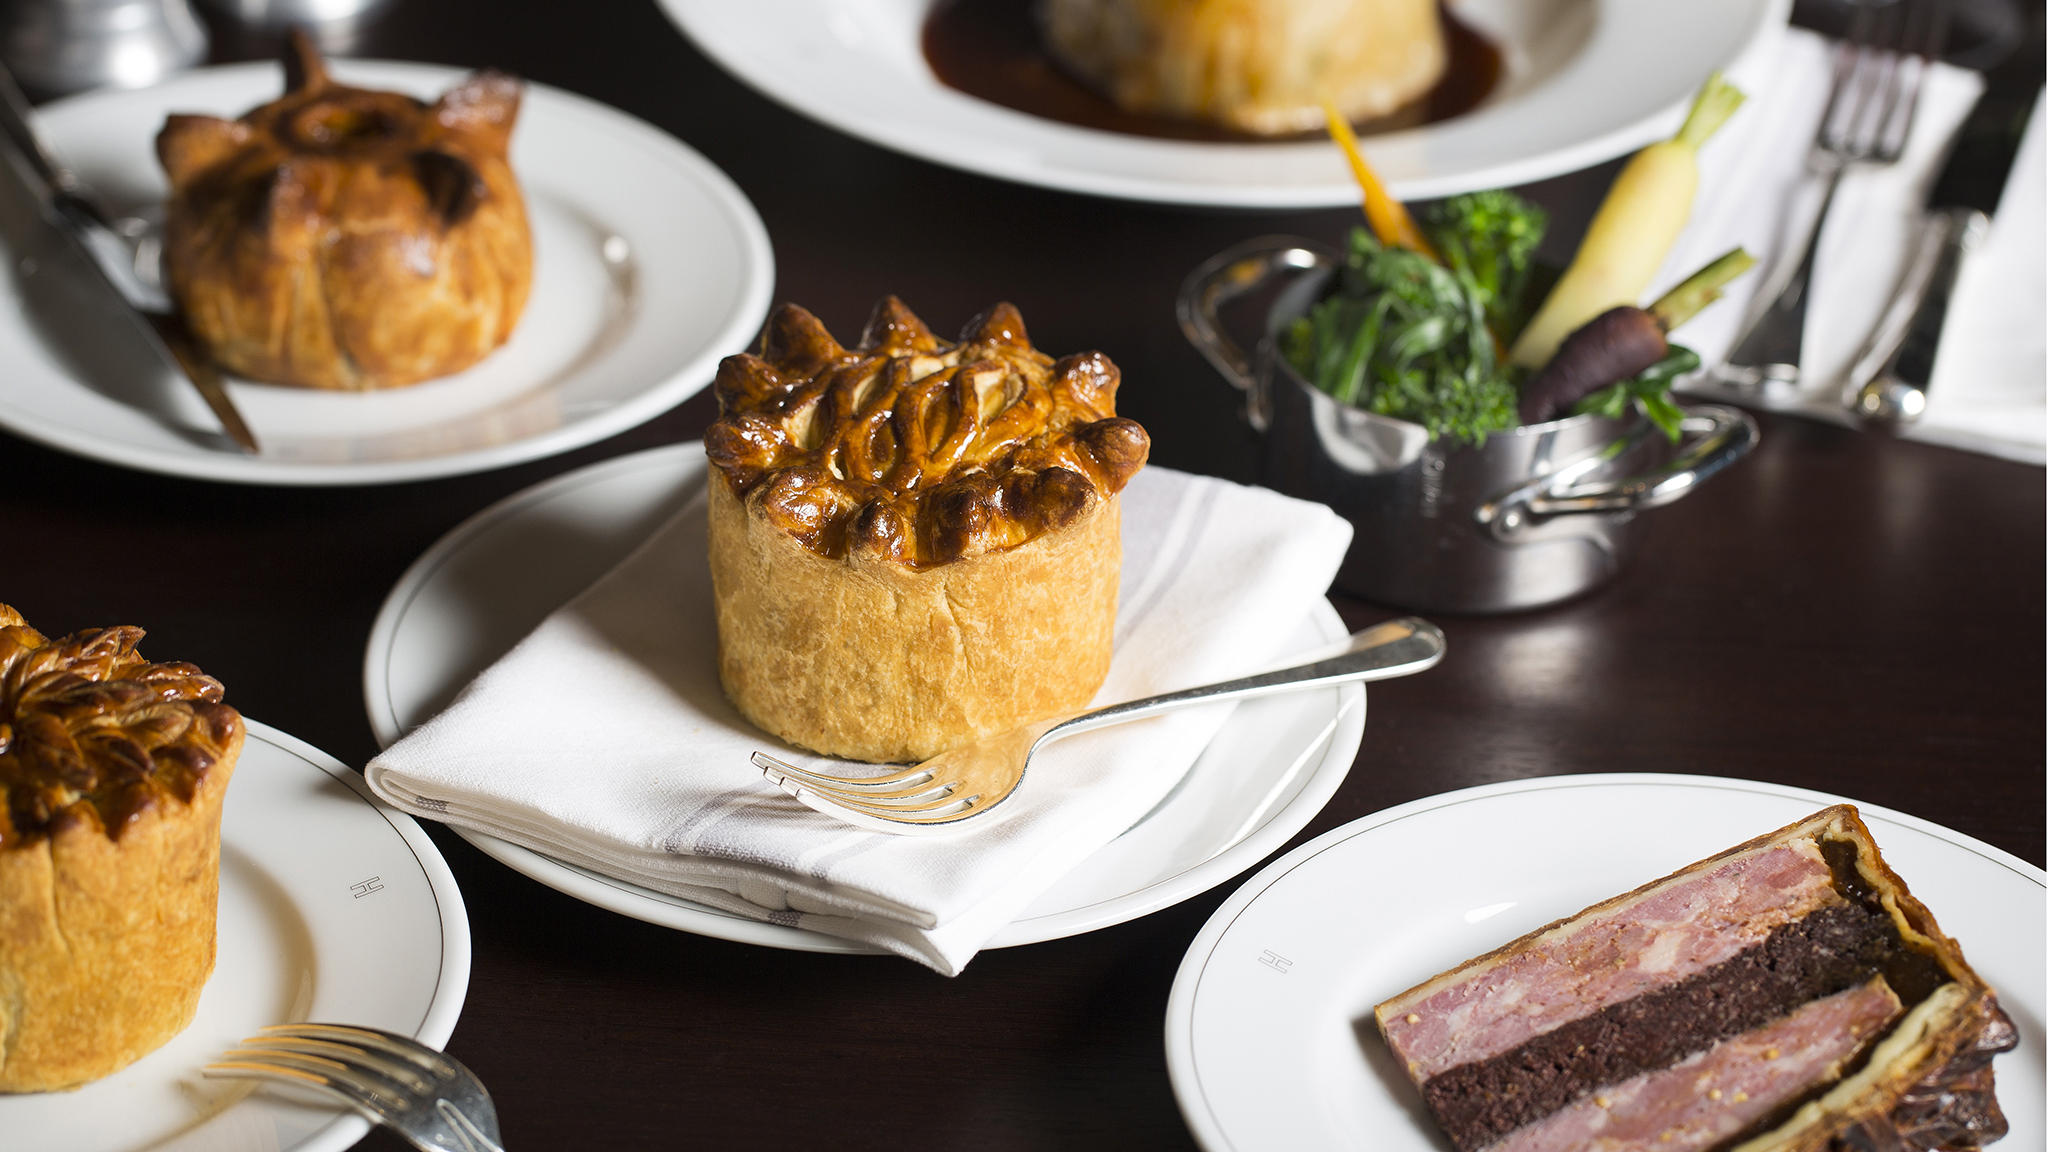 Holborn Dining Room, London — pies to die for